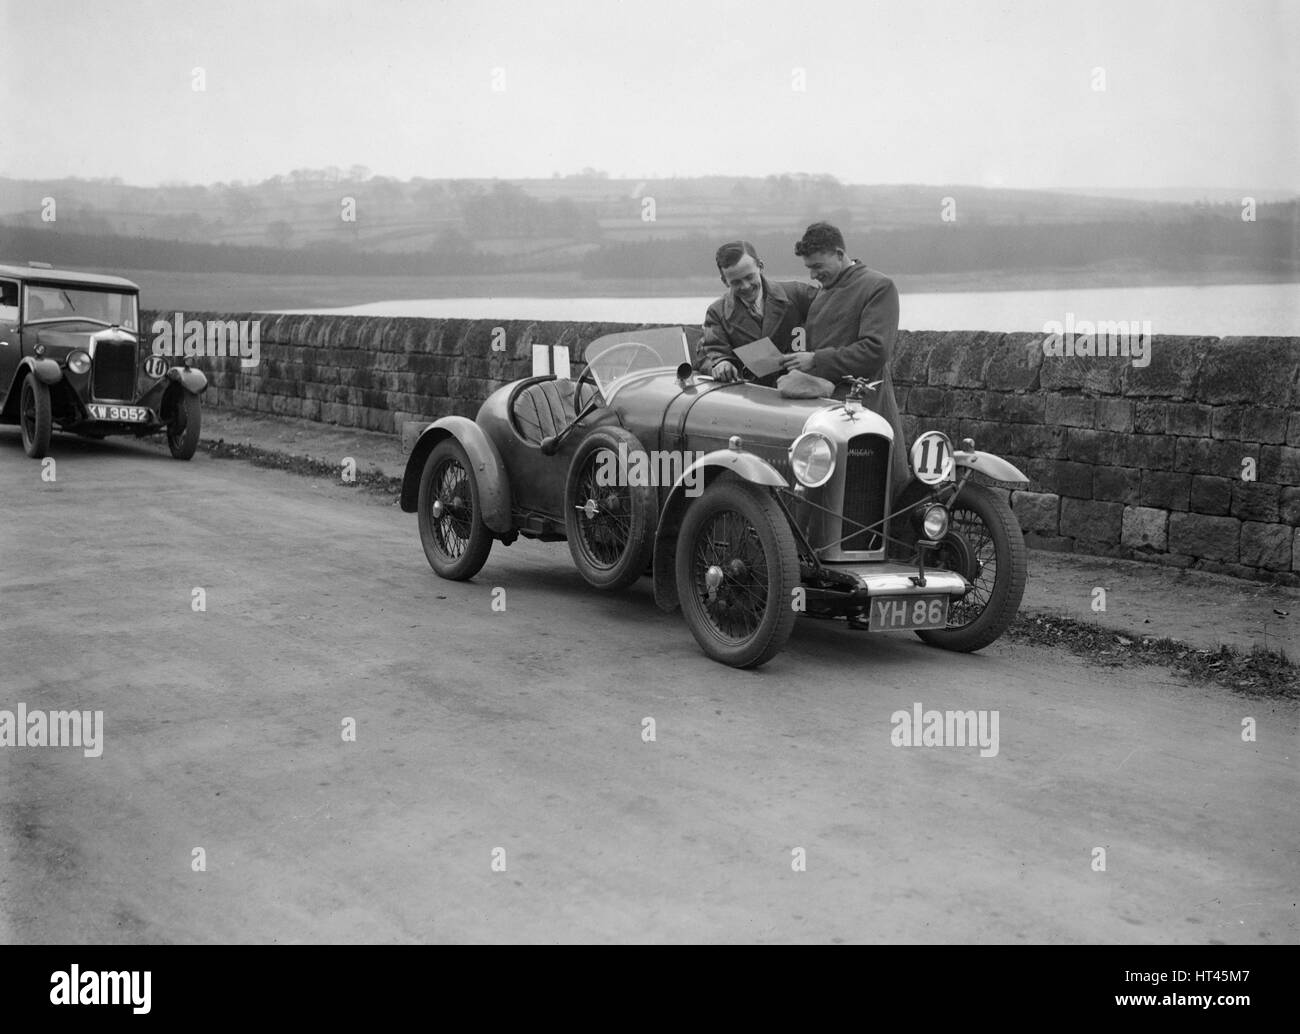 Amilcar and Riley 9 at the Ilkley & District Motor Club Trial, Fewston Reservoir, Yorkshire, 1930s. Artist: - Stock Image